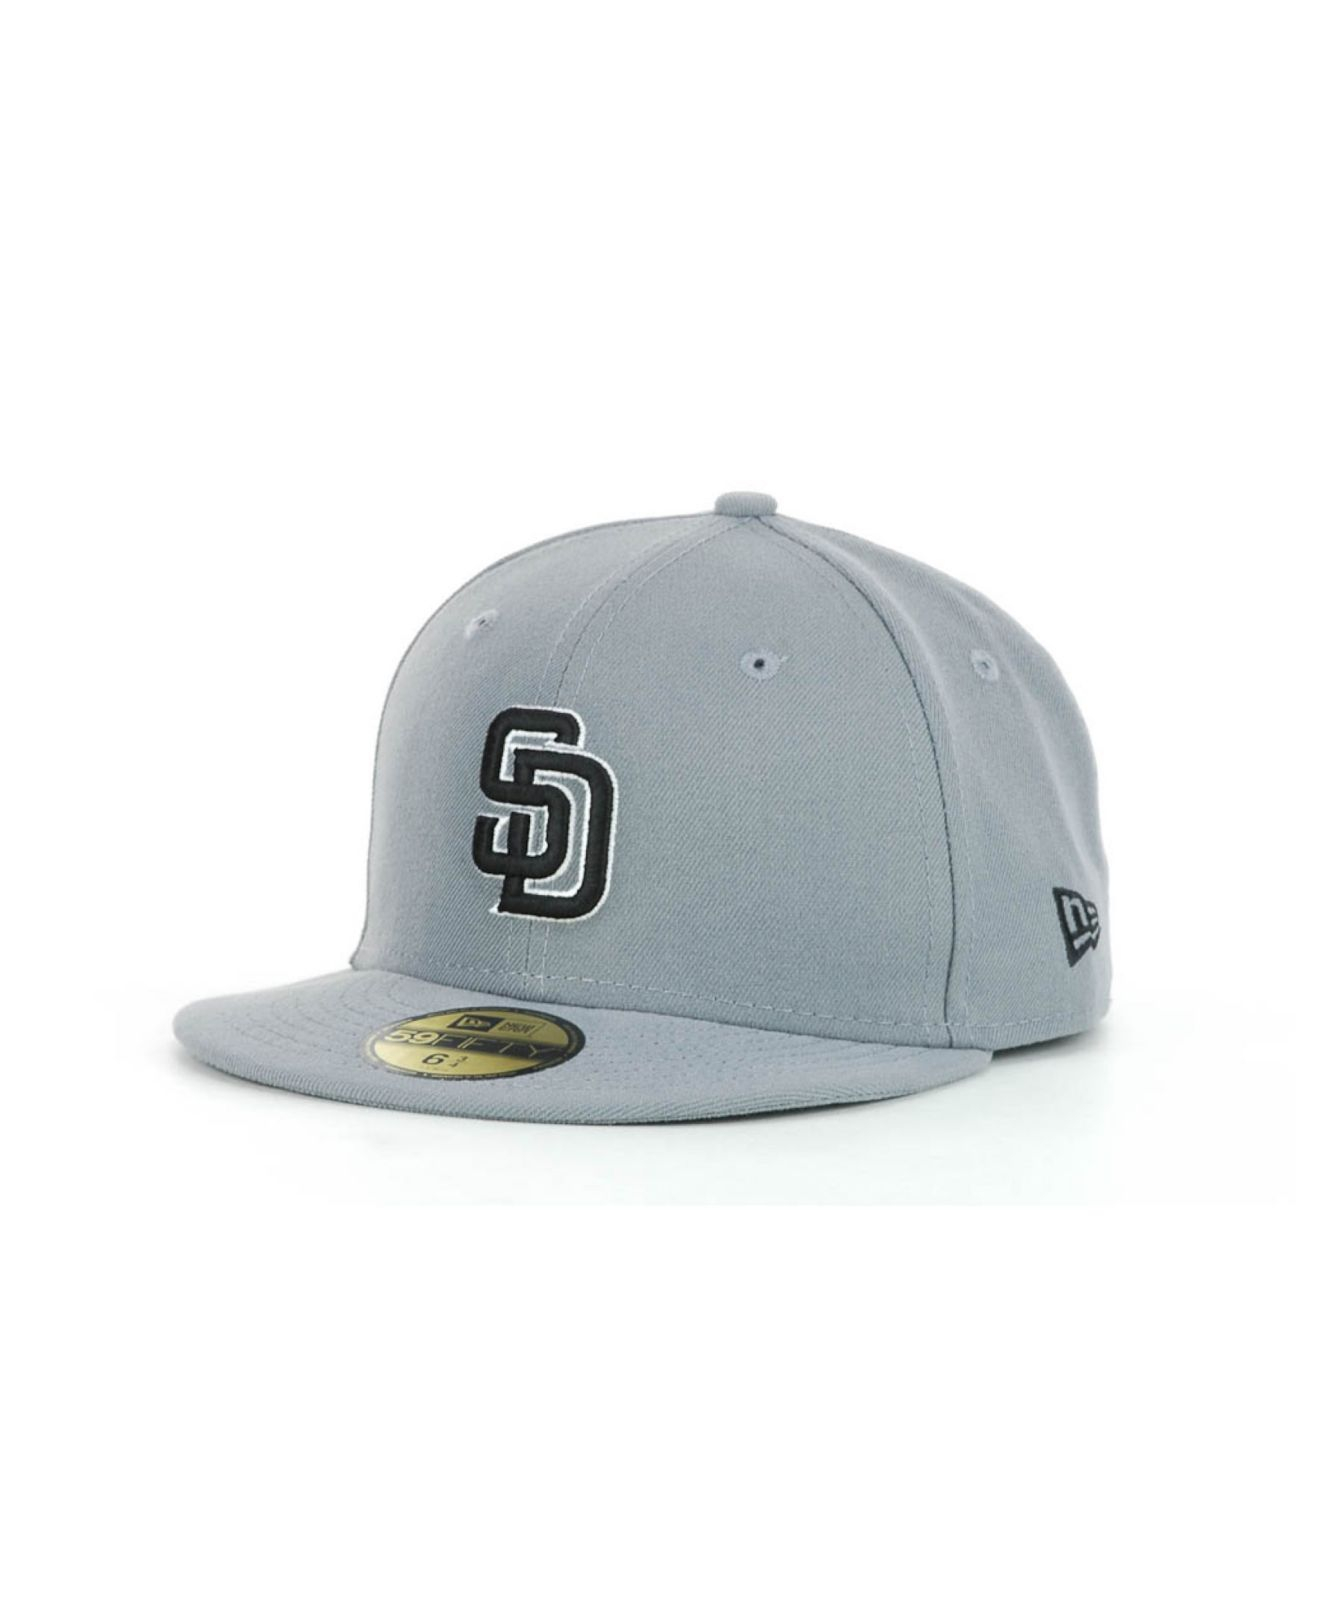 premium selection 9a407 18b83 ... top quality lyst ktz kids san diego padres mlb gray black and white  59fifty 9b2fa 37145